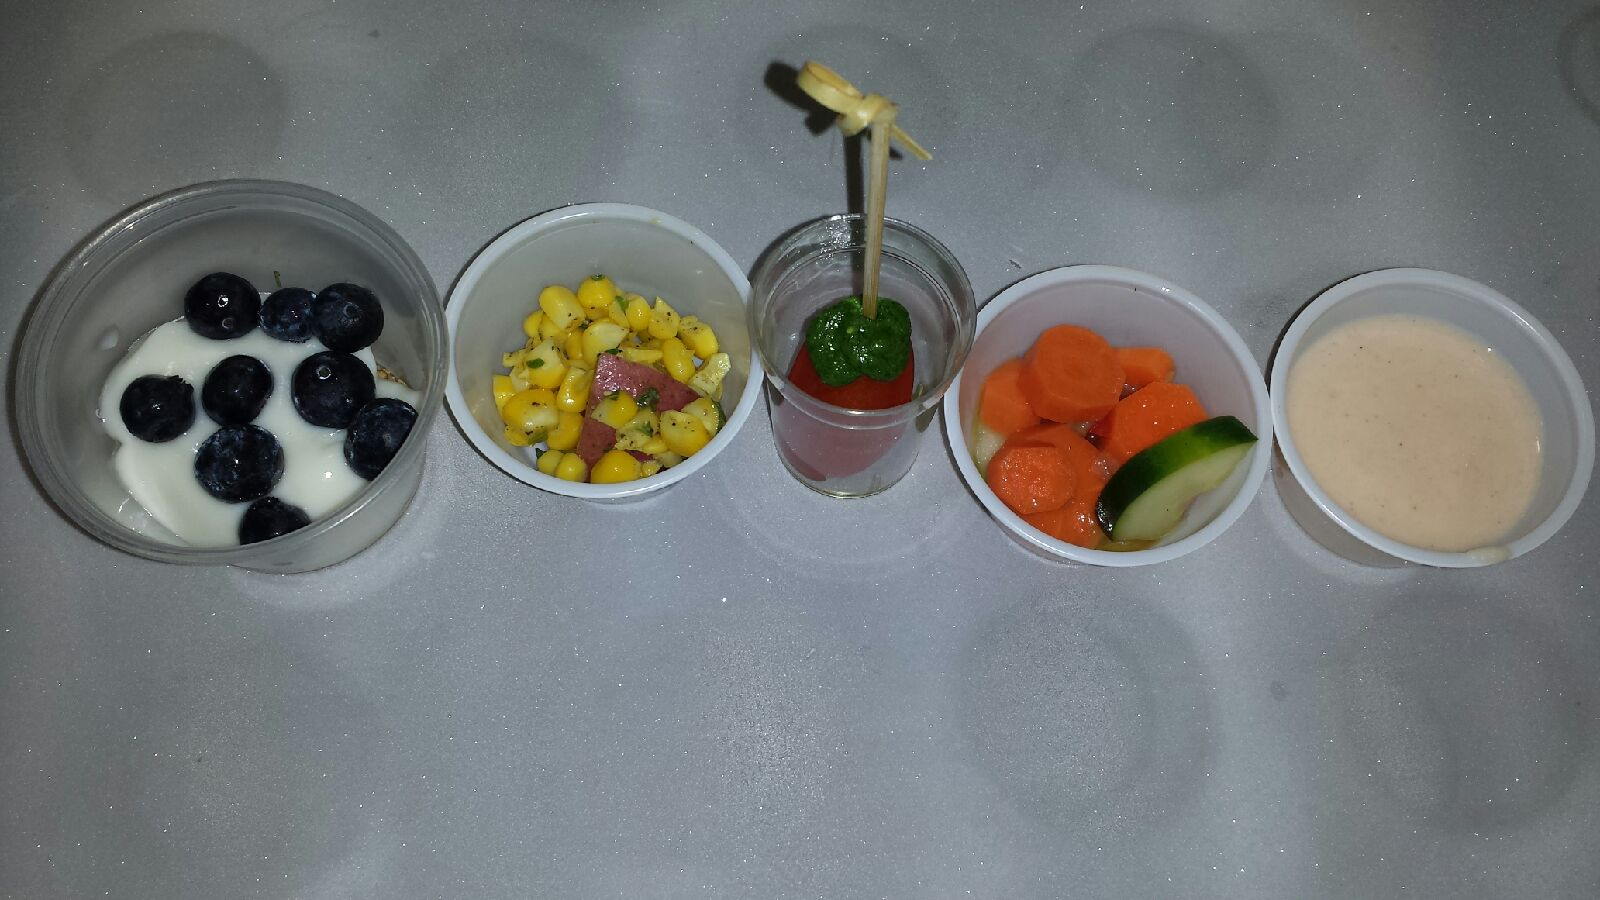 Fresh fruit and vegetable recipes prepared by Chef Paula. From right to left: Blueberry and Yogurt Breakfast Cups, Corn and Potato Salad, Grapes Tomatoes with Spinach Arugula Pesto, Marinated Carrot and Cucumber Salad and Cantaloupe Smoothie.